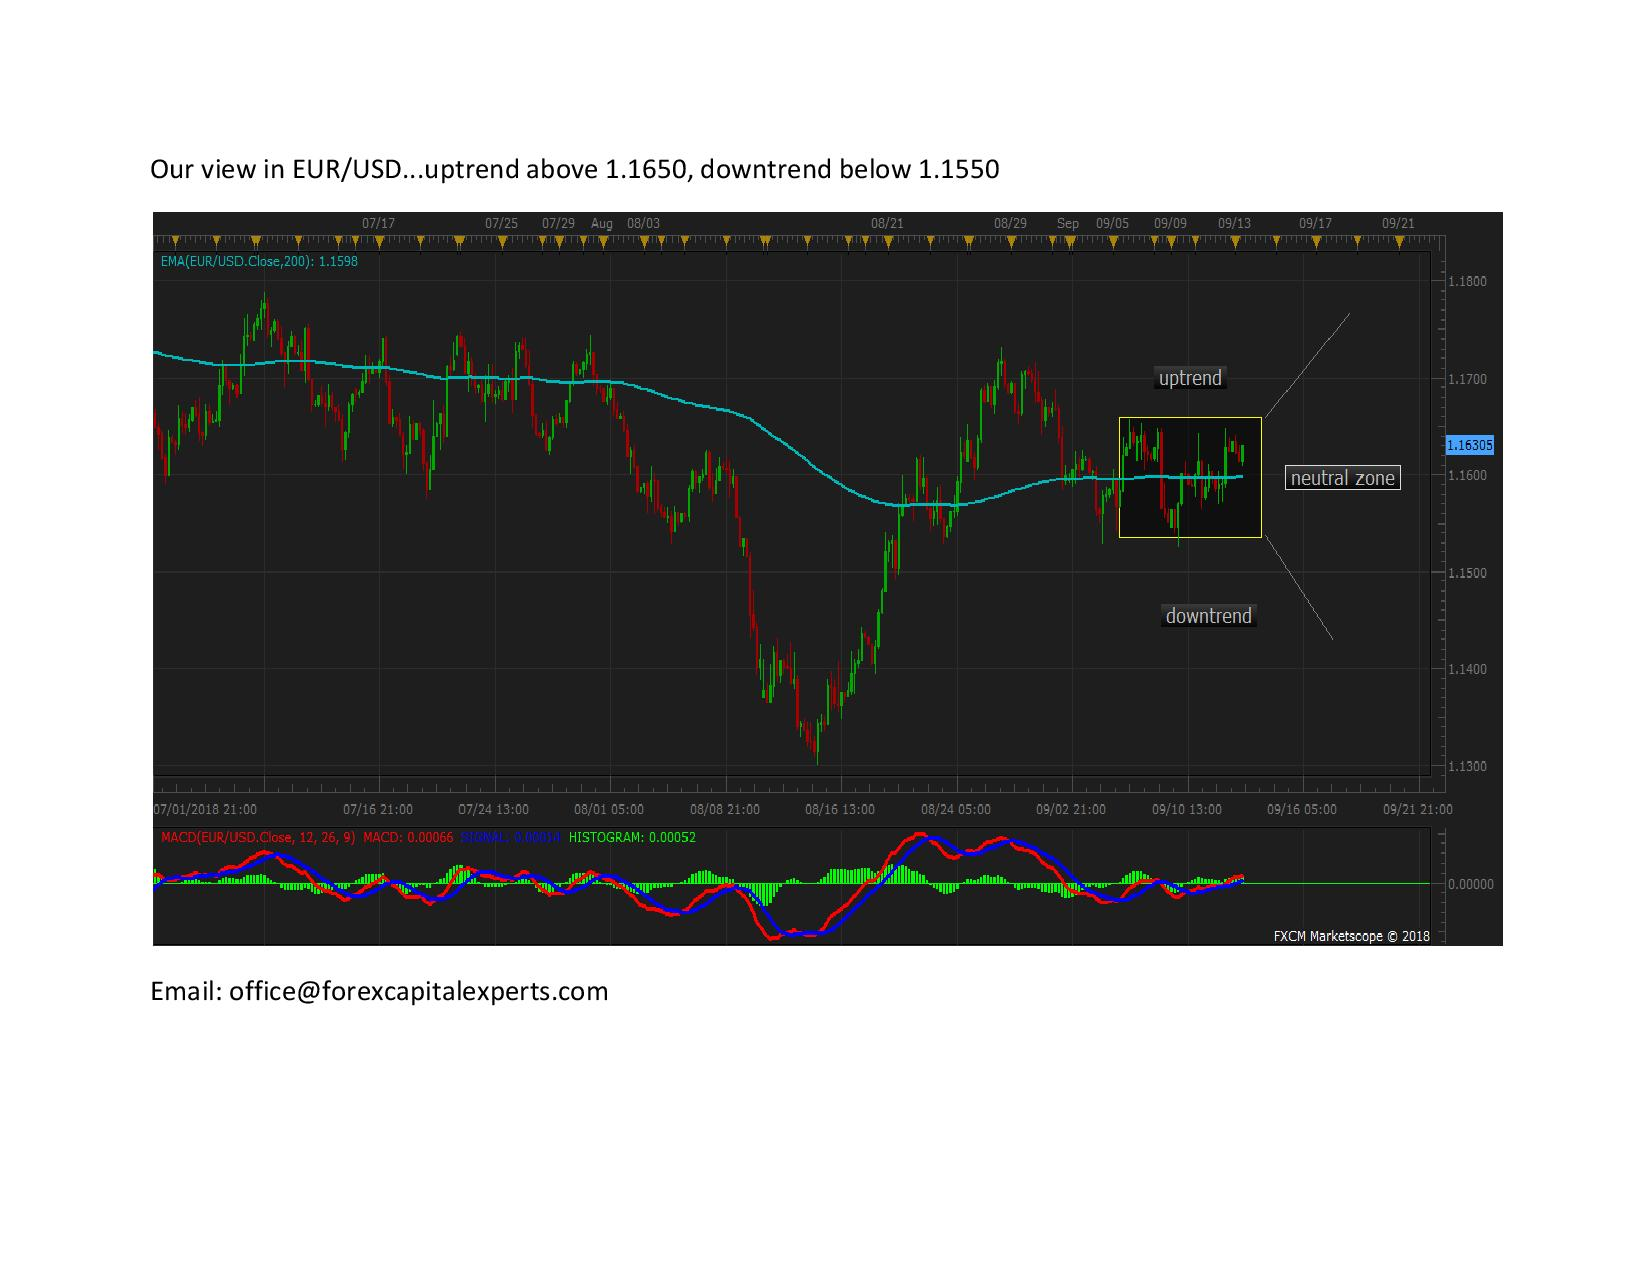 Our view in EURUSD page 0012